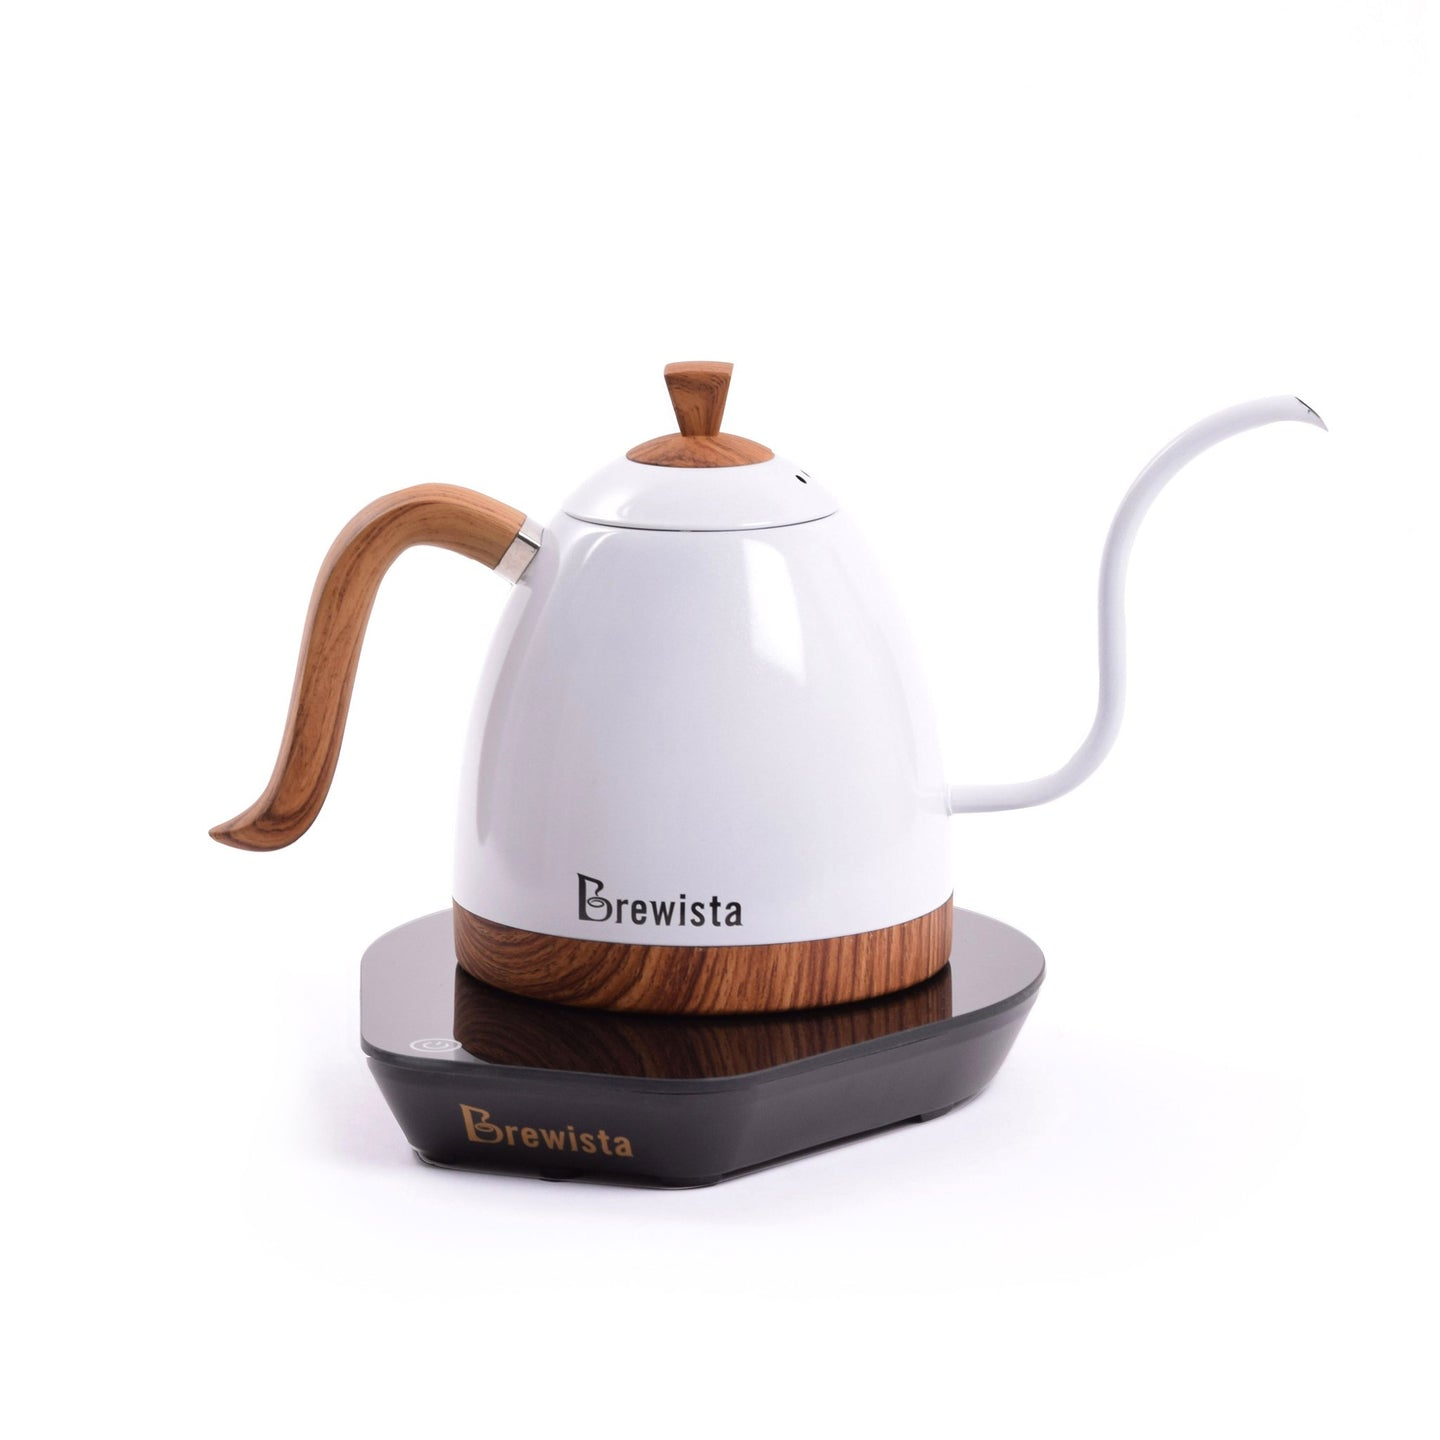 Brewista Artisan 600mL Gooseneck Variable Temperature Kettle - Pearl White - Brewista